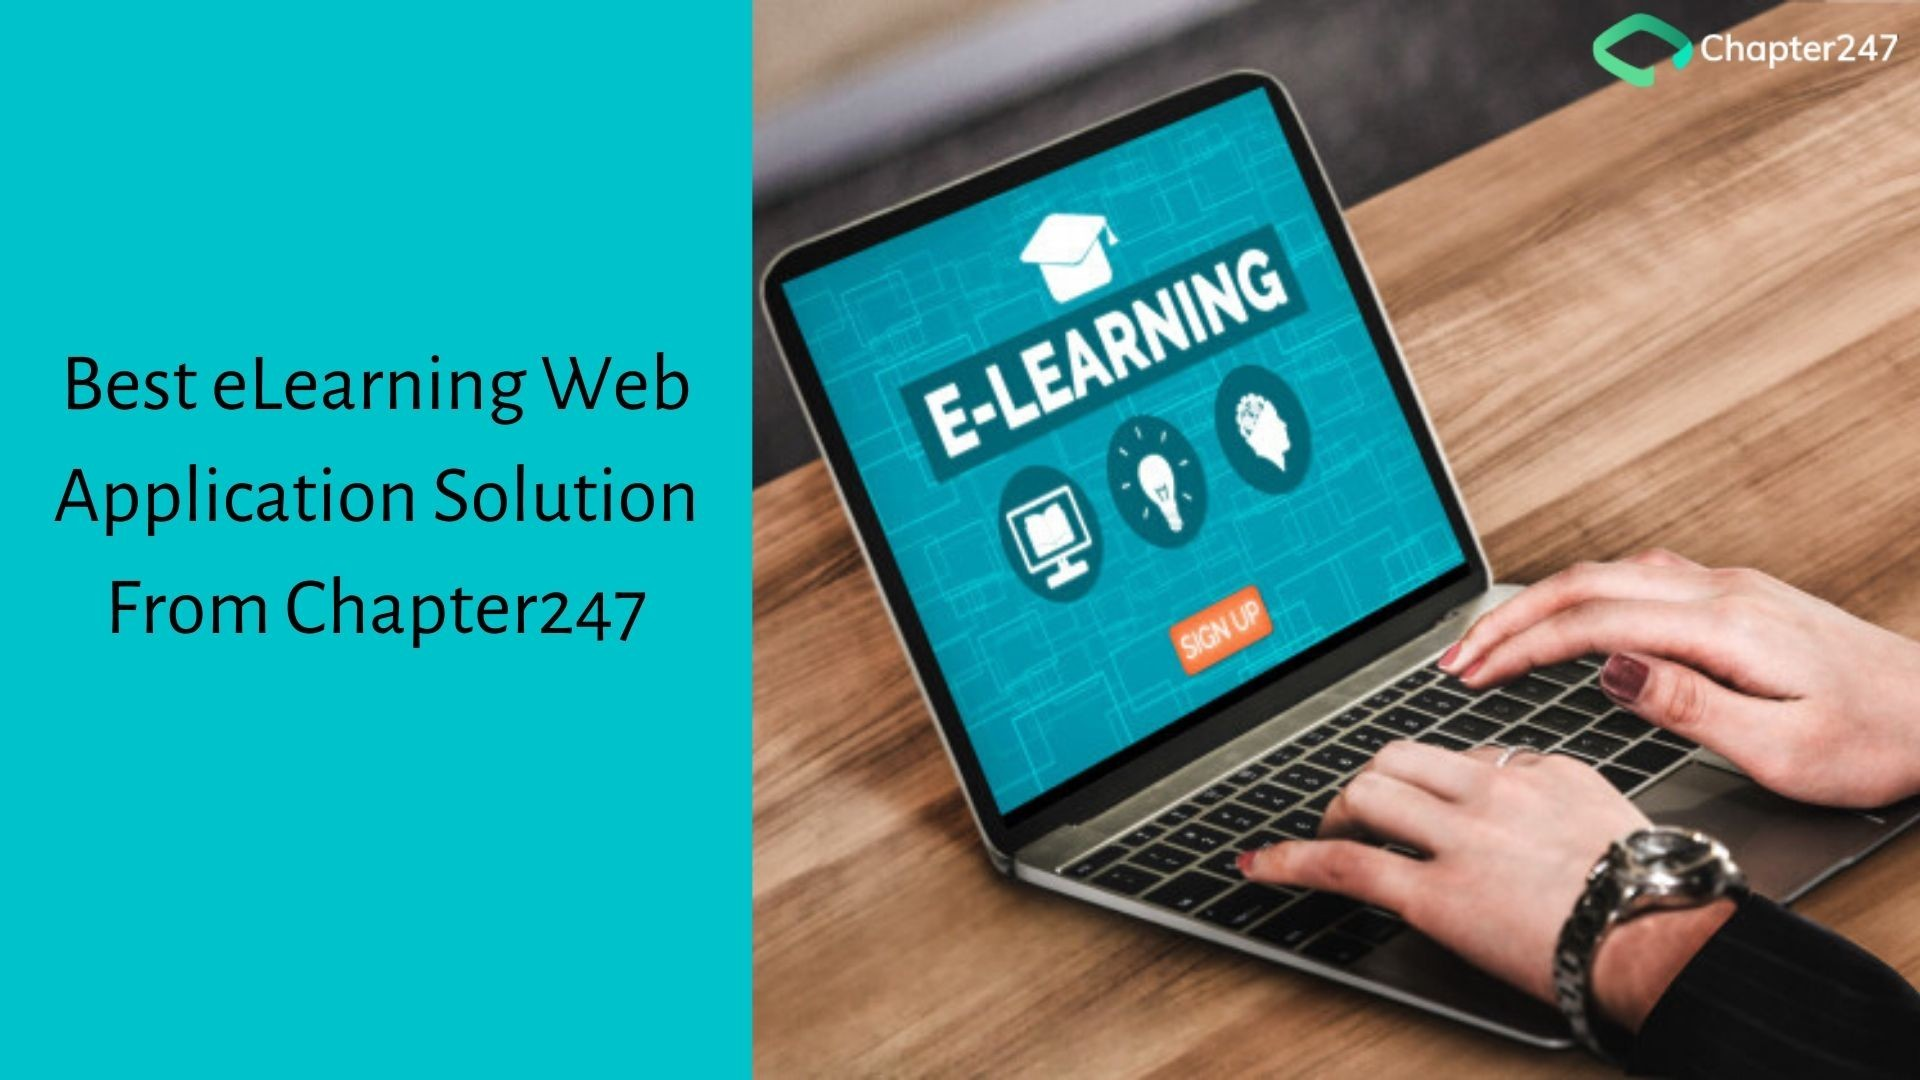 Get The Best eLearning Web Application Solution From Chapter247